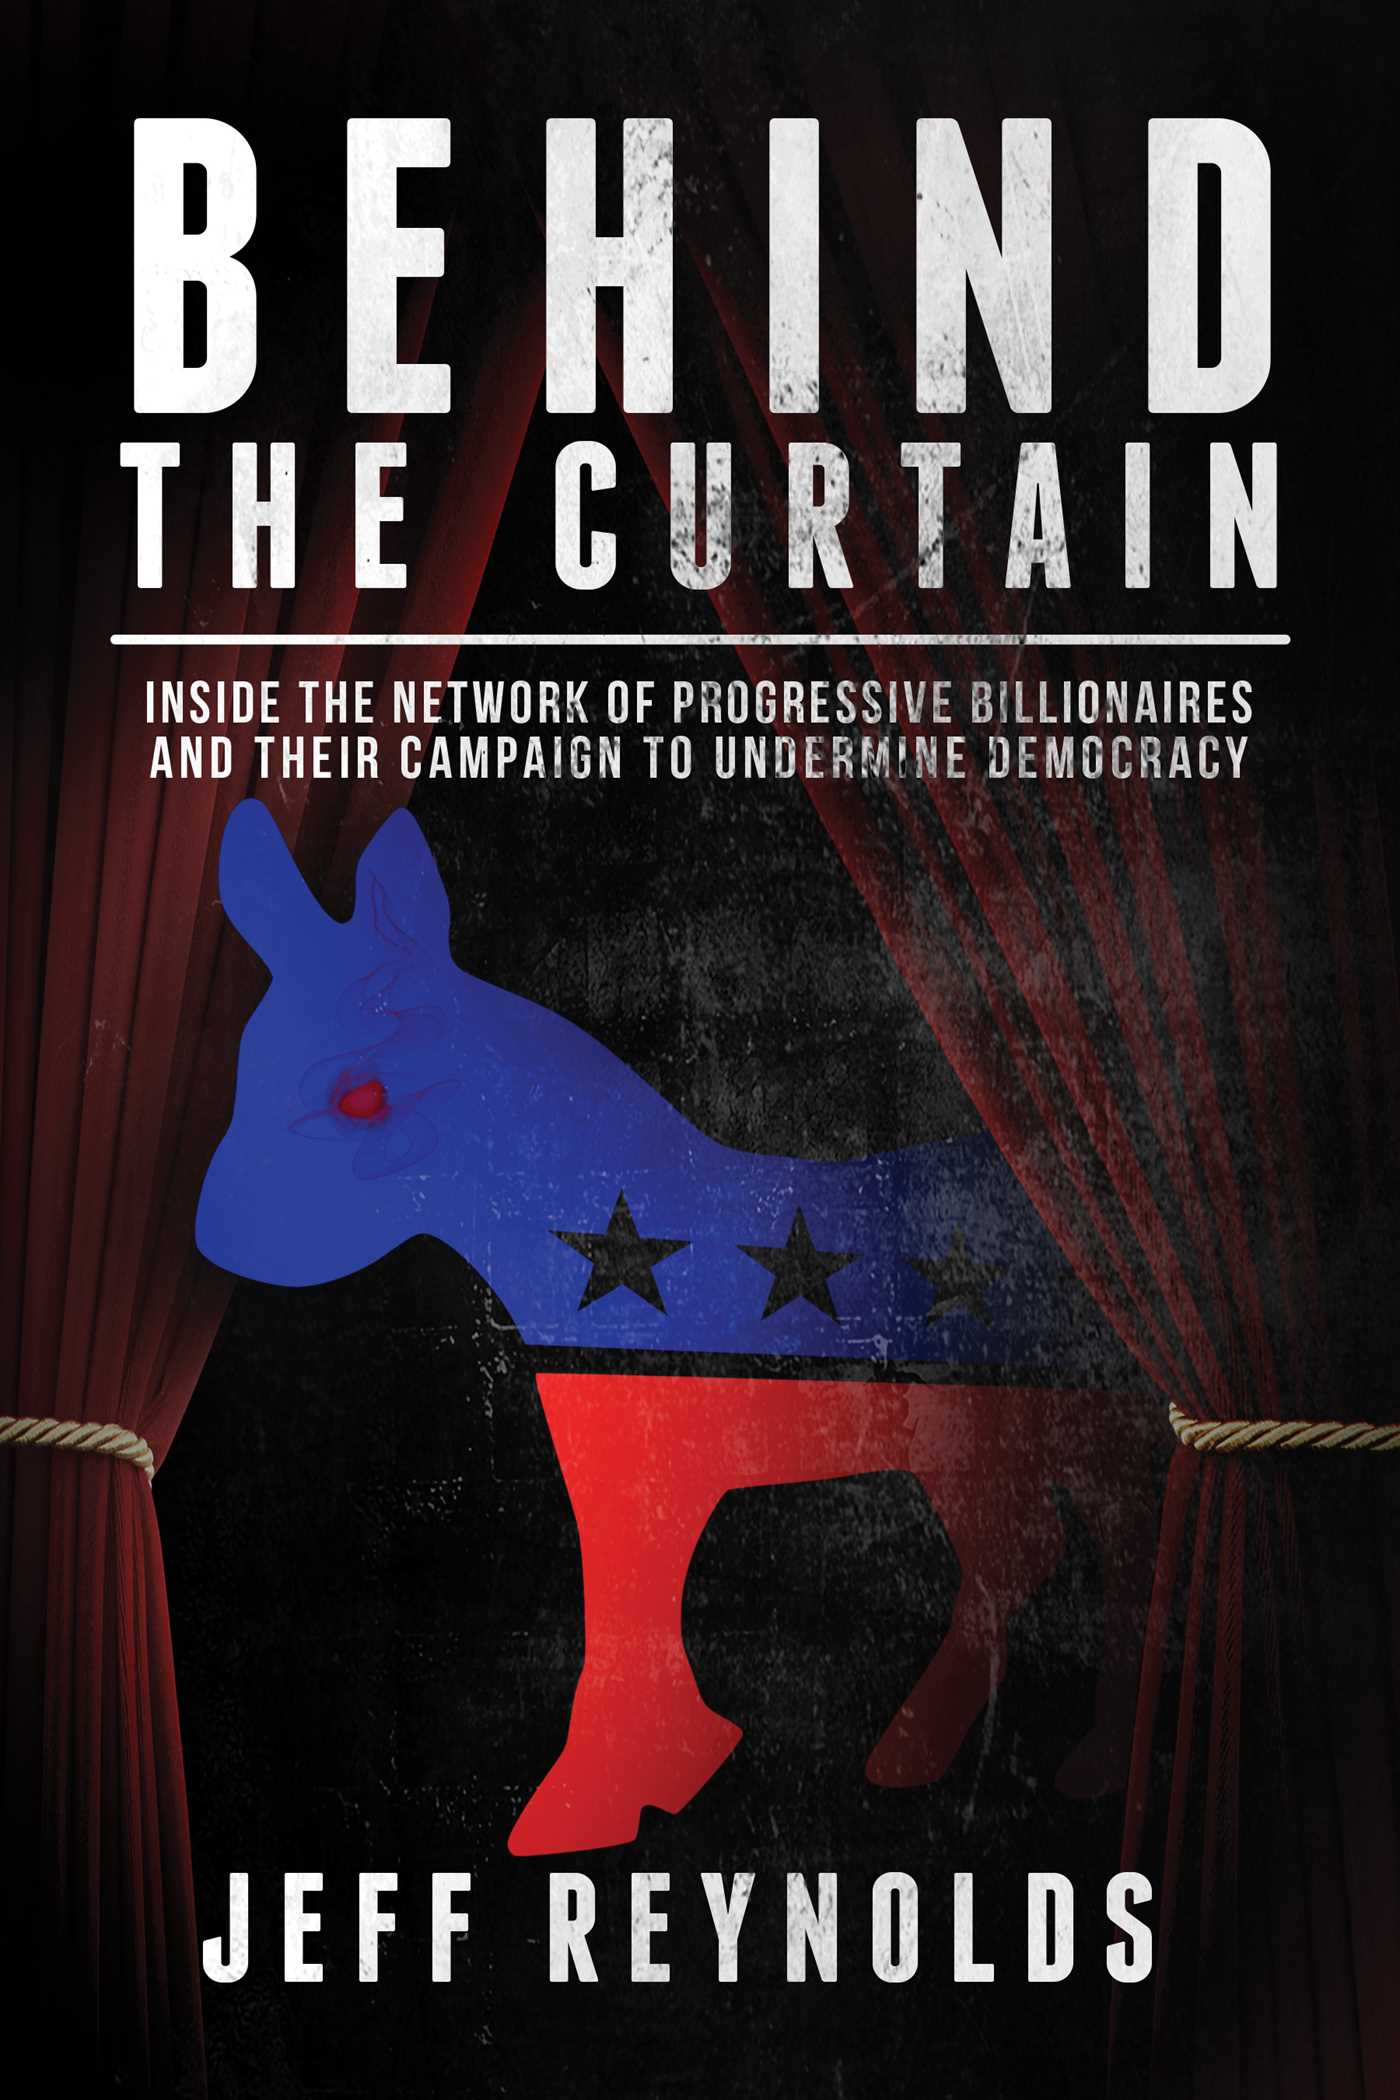 behind the curtain book by jeff